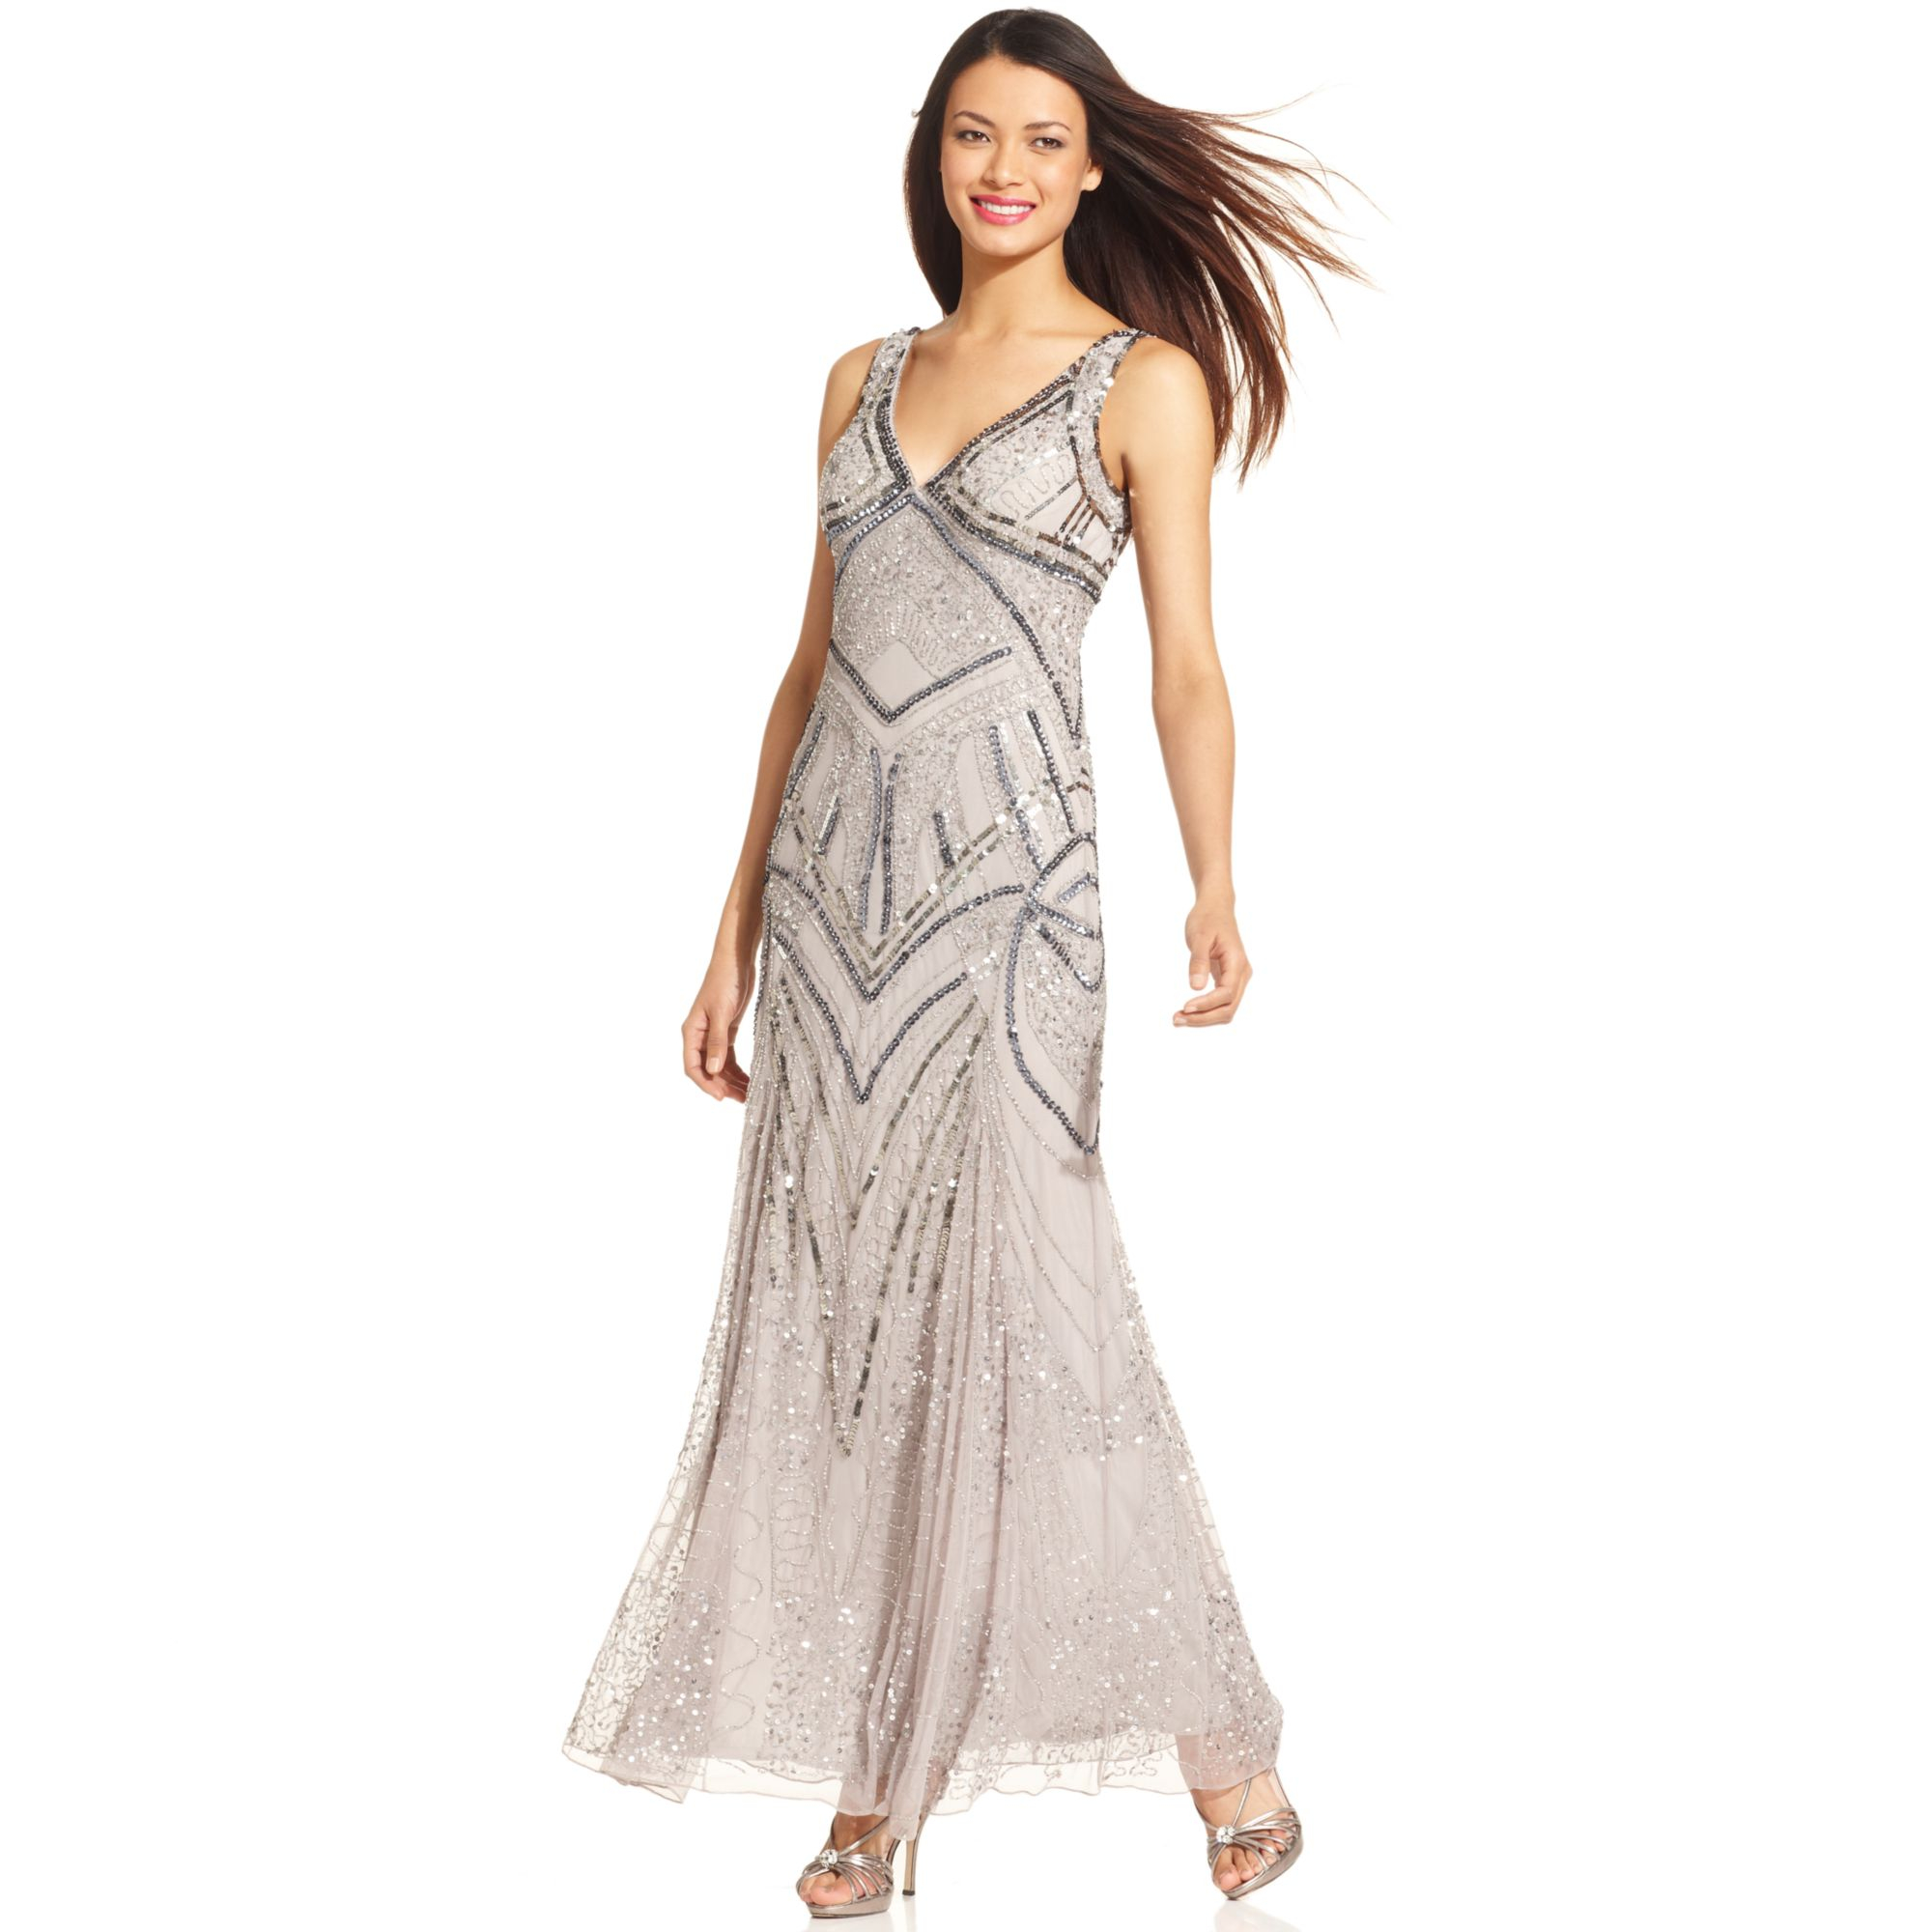 patra evening dresses - Dress Yp